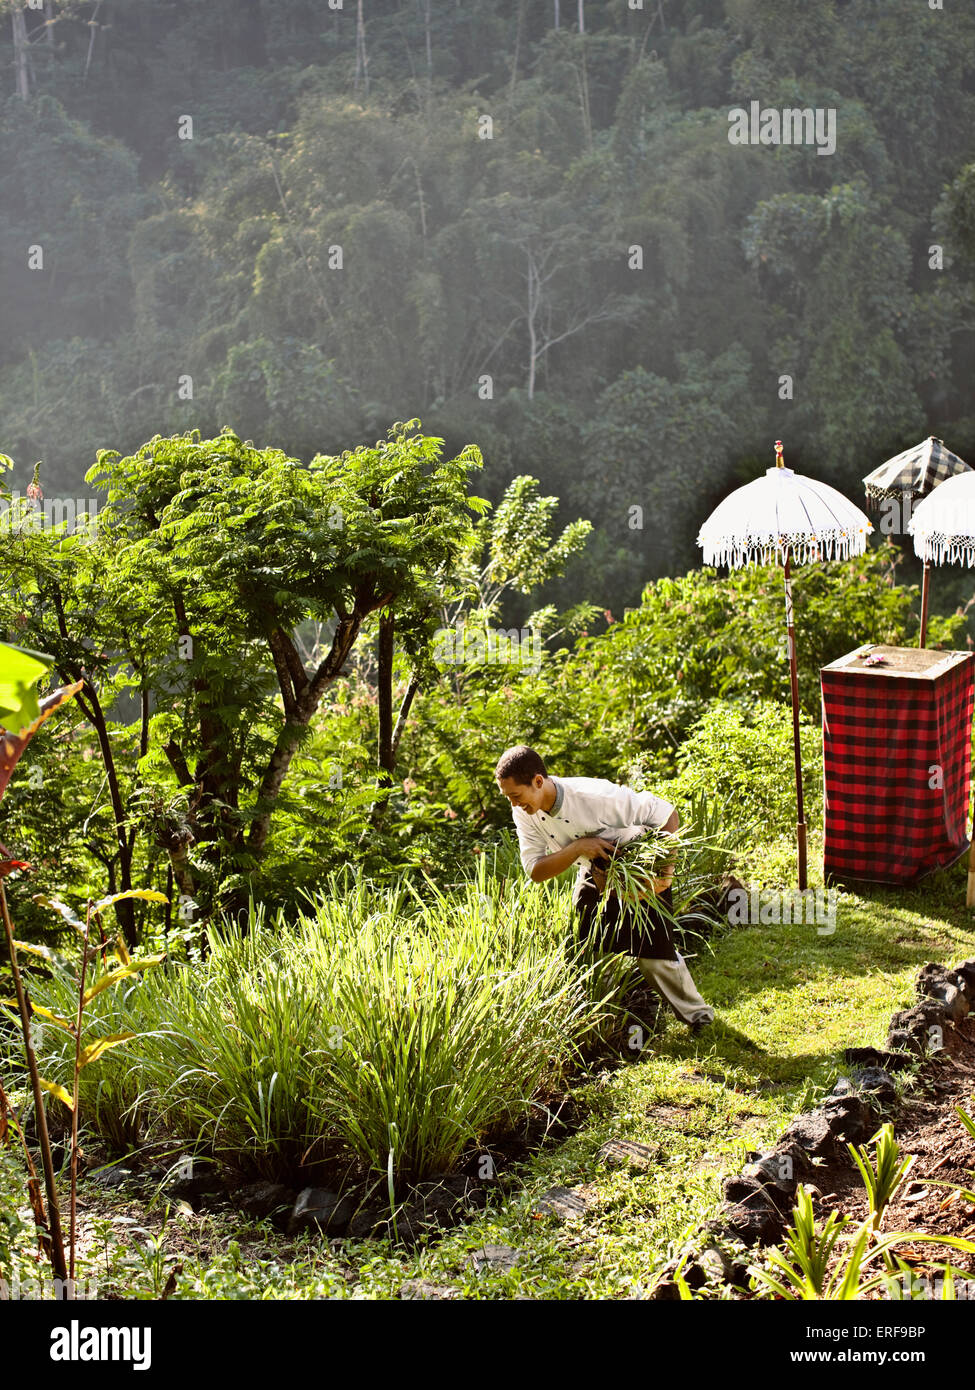 Chef picks vegetables in the resort's organic garden at Ubud Hanging Gardens, Bali, Indonesia. - Stock Image